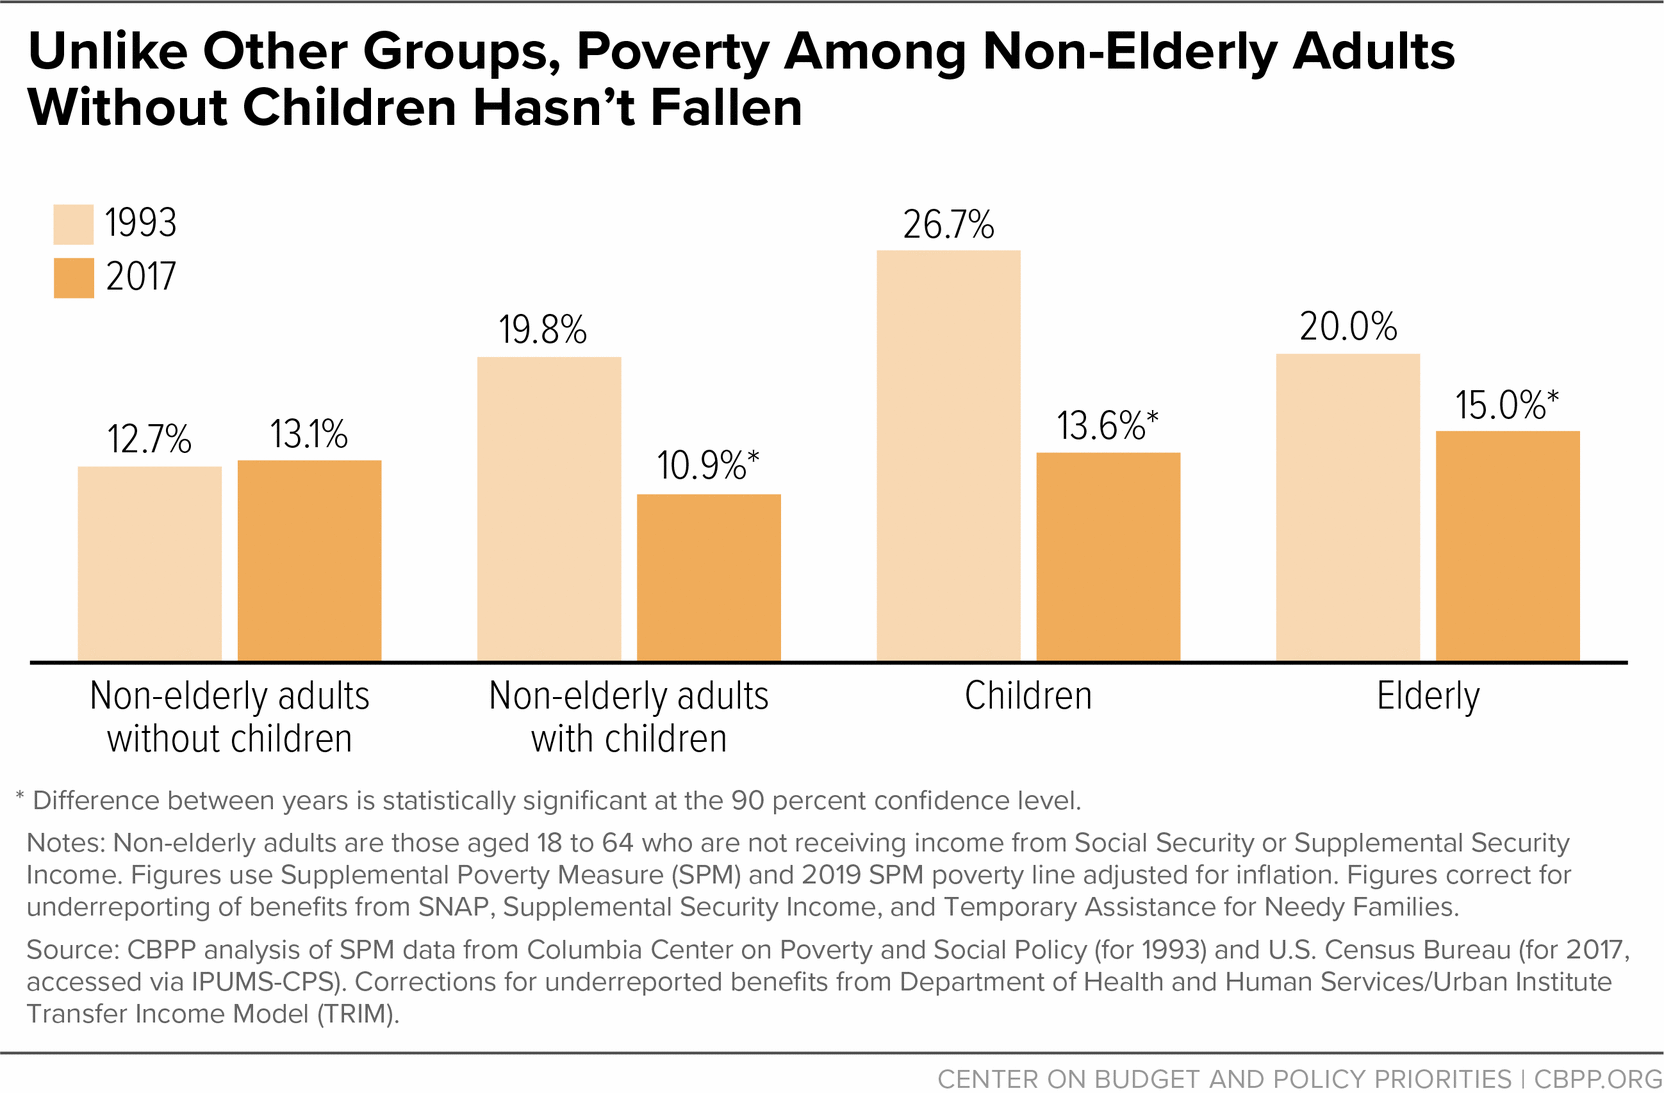 Unlike Other Groups, Poverty Among Non-Elderly Adults Without Children Hasn't Fallen